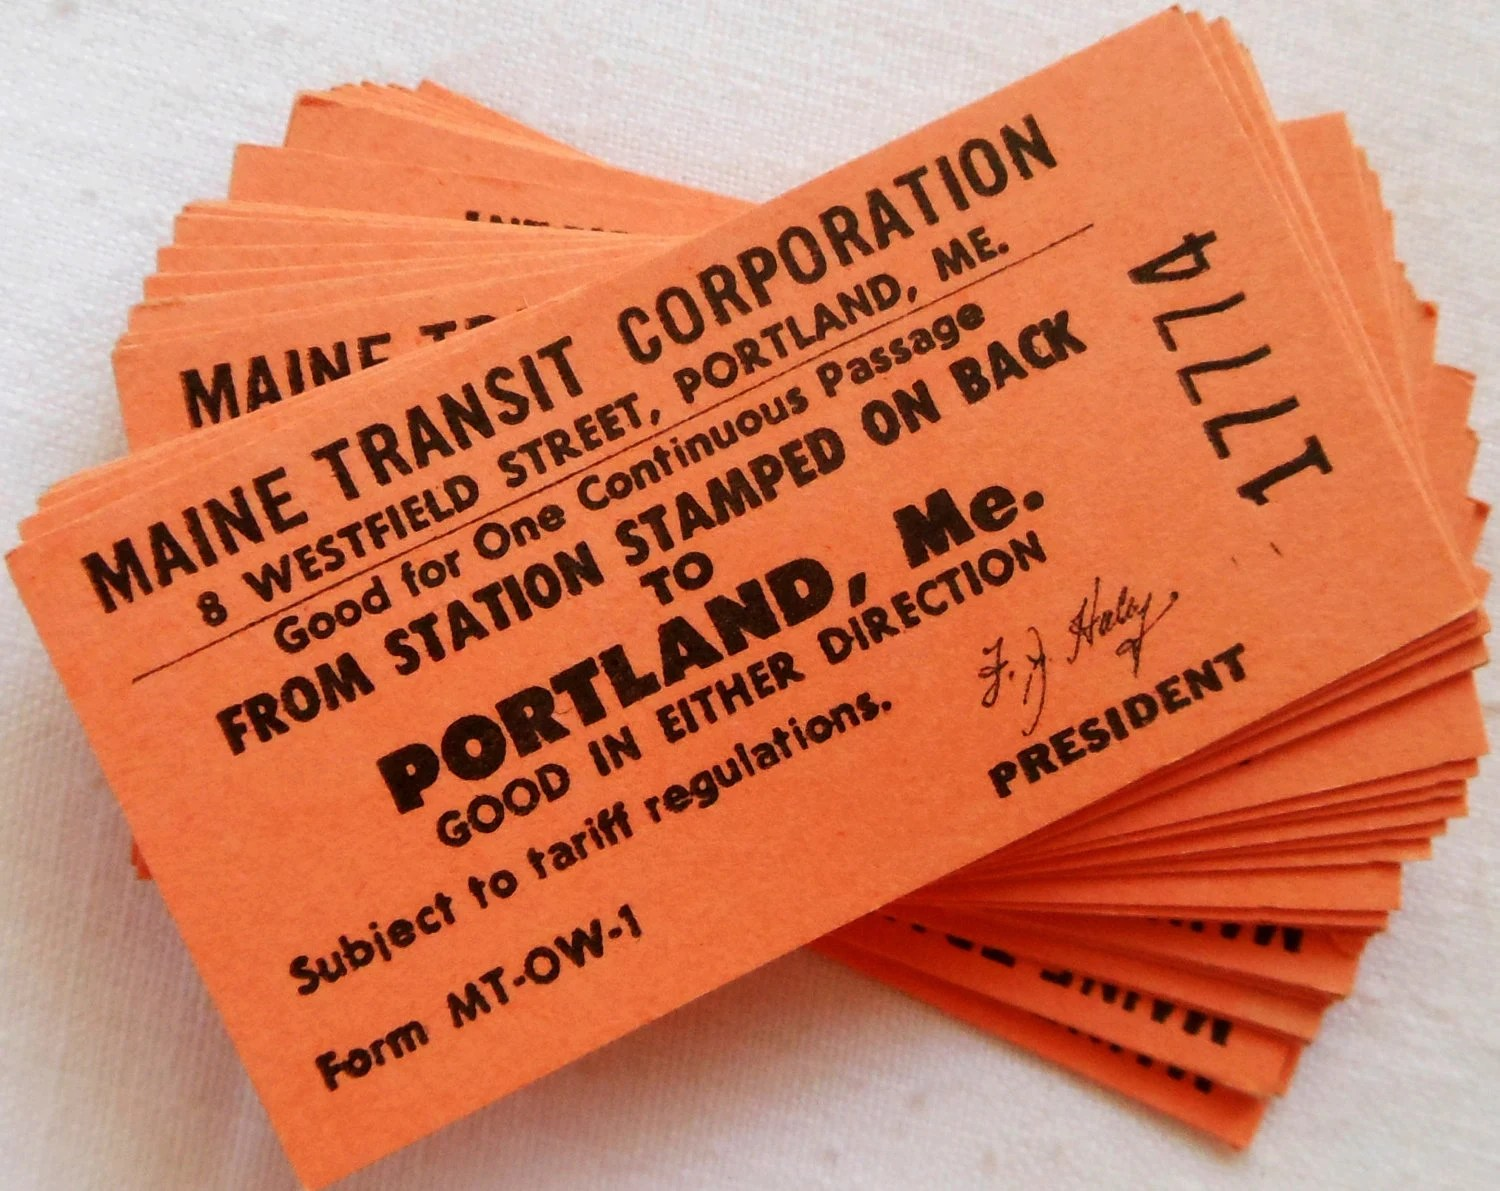 Vintage Orange Train Tickets in Sets of 10 and 25 - Maine Transit Corporation Railroad Ticket to Portland, Maine - LisasCraftShoppe